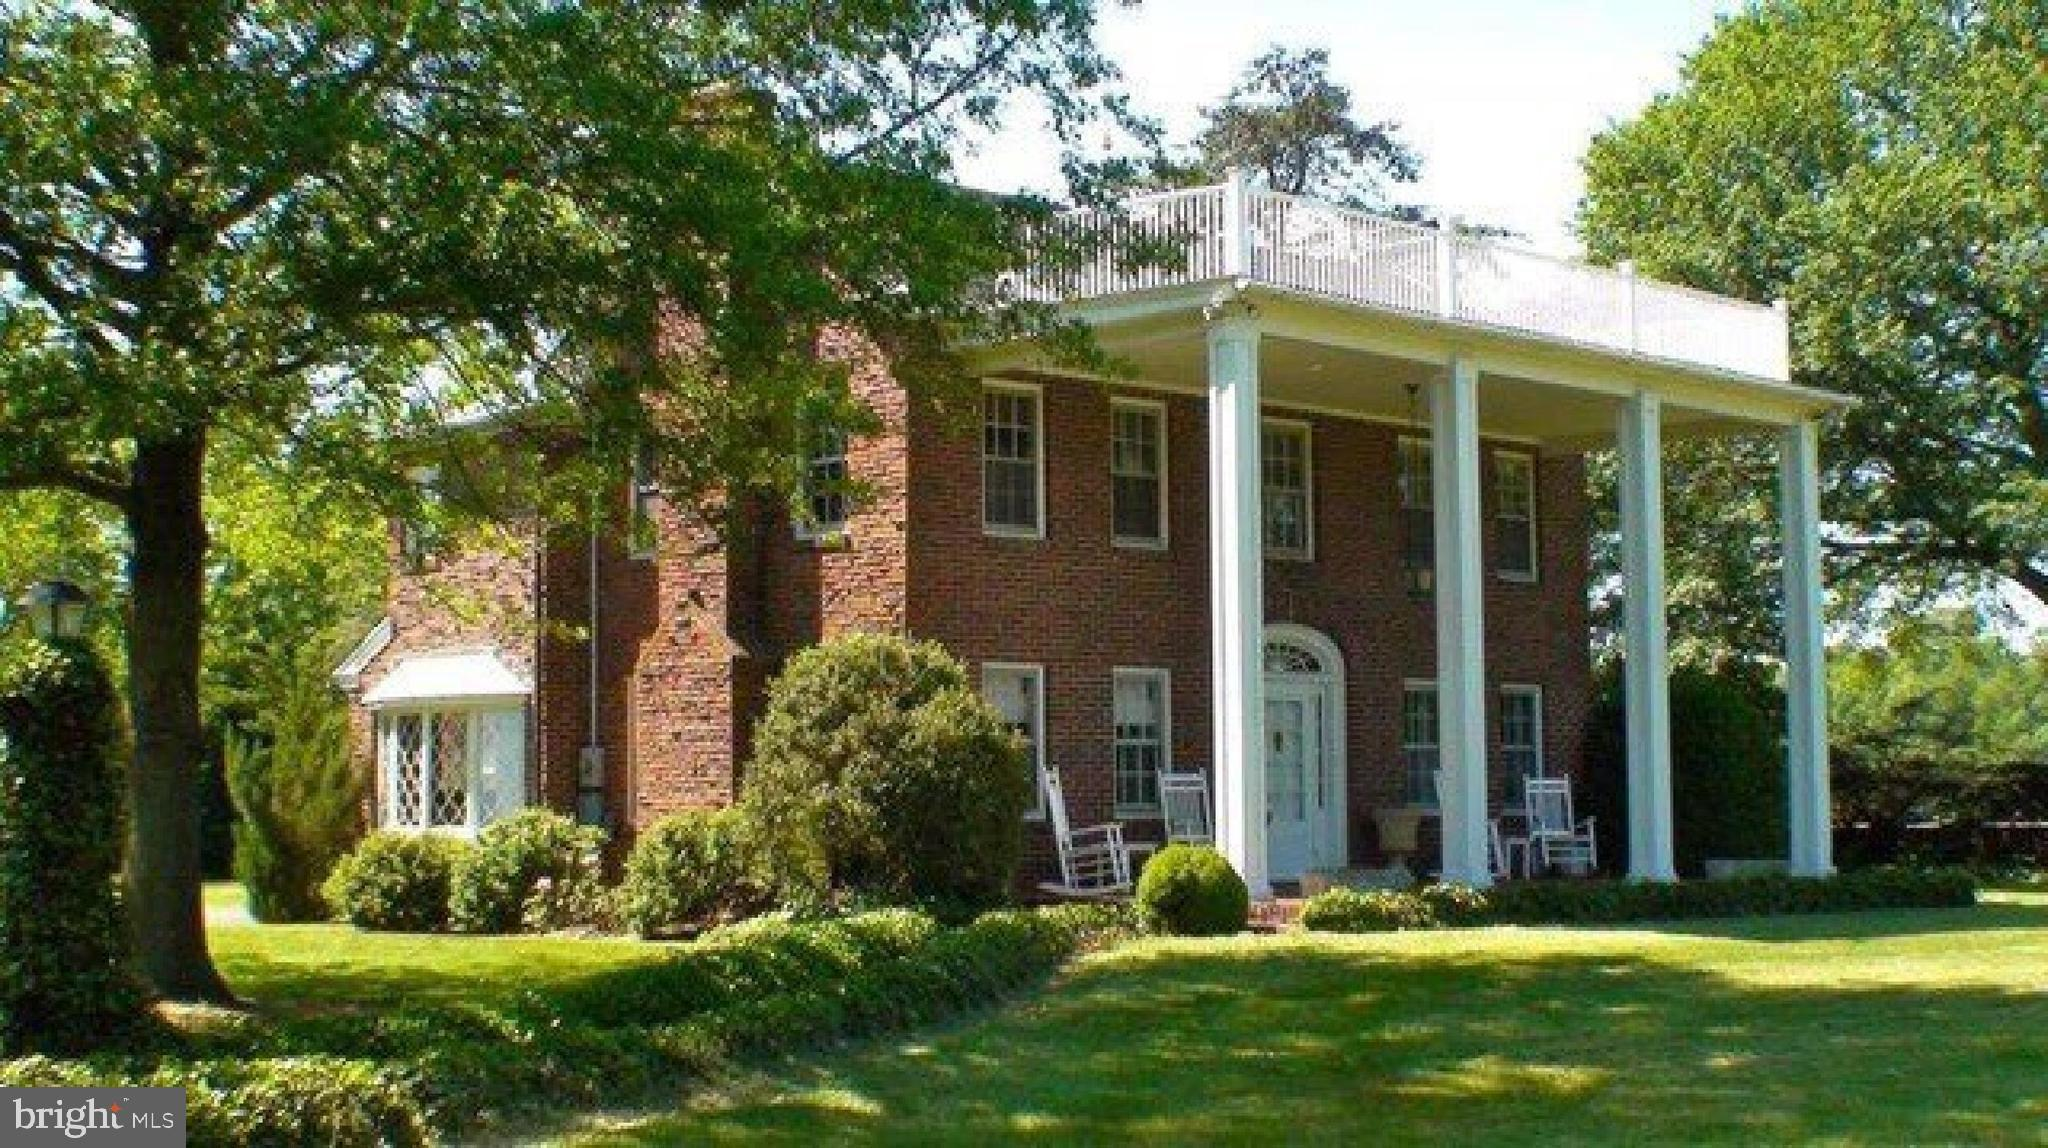 """This stately 3BR 3BA Colonial is situated on nearly 3 acres dating back to 1775 as part of the original  Land Grant from William Penn named Jacob's Choice Property.  While maintaining it's historical elegant charm, many upgrades are provided.  A must see treasure! BEING SOLD """"AS IS"""" WITH NO WARRANTIES EXPRESSED OR IMPLIED."""